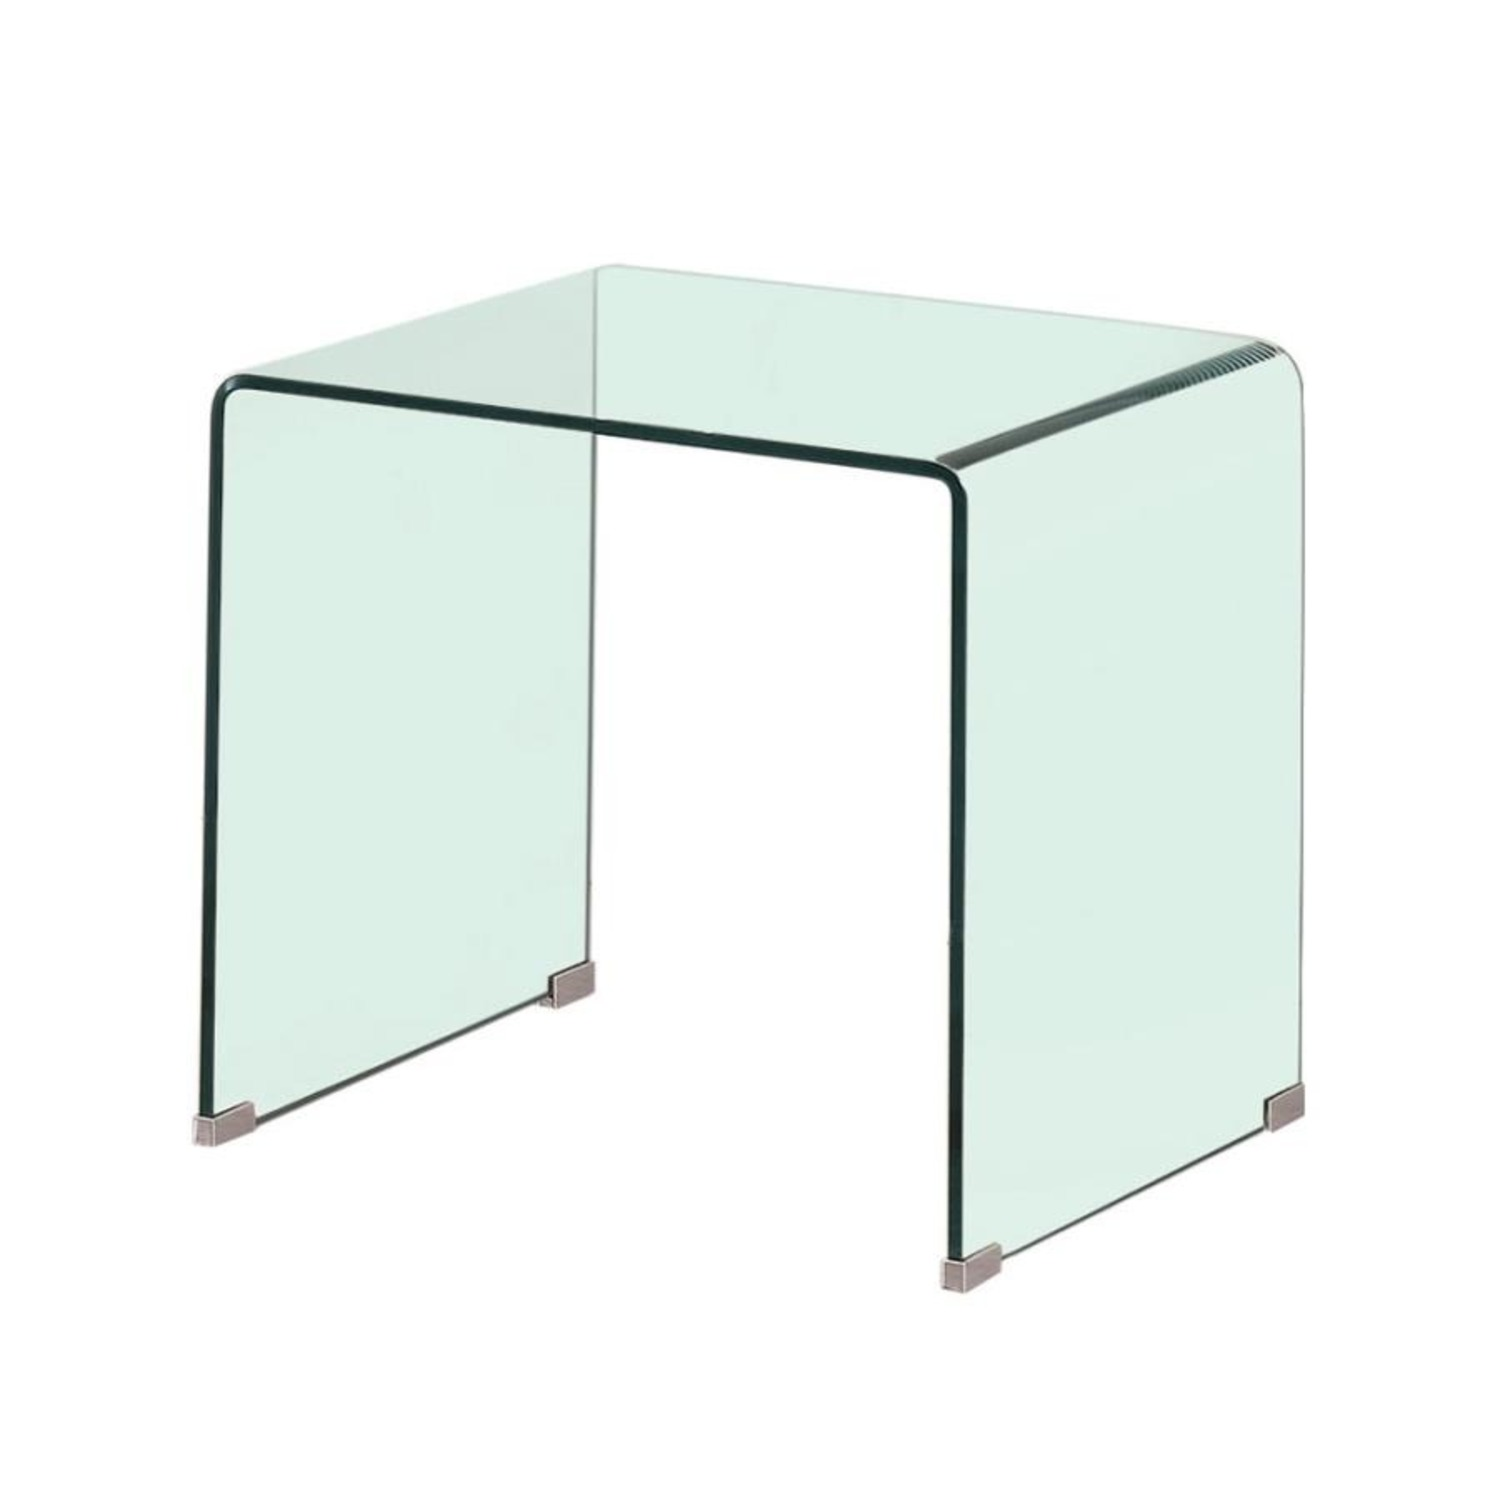 End Table In A Clear Finish W/ Curved Top Edge - image-0